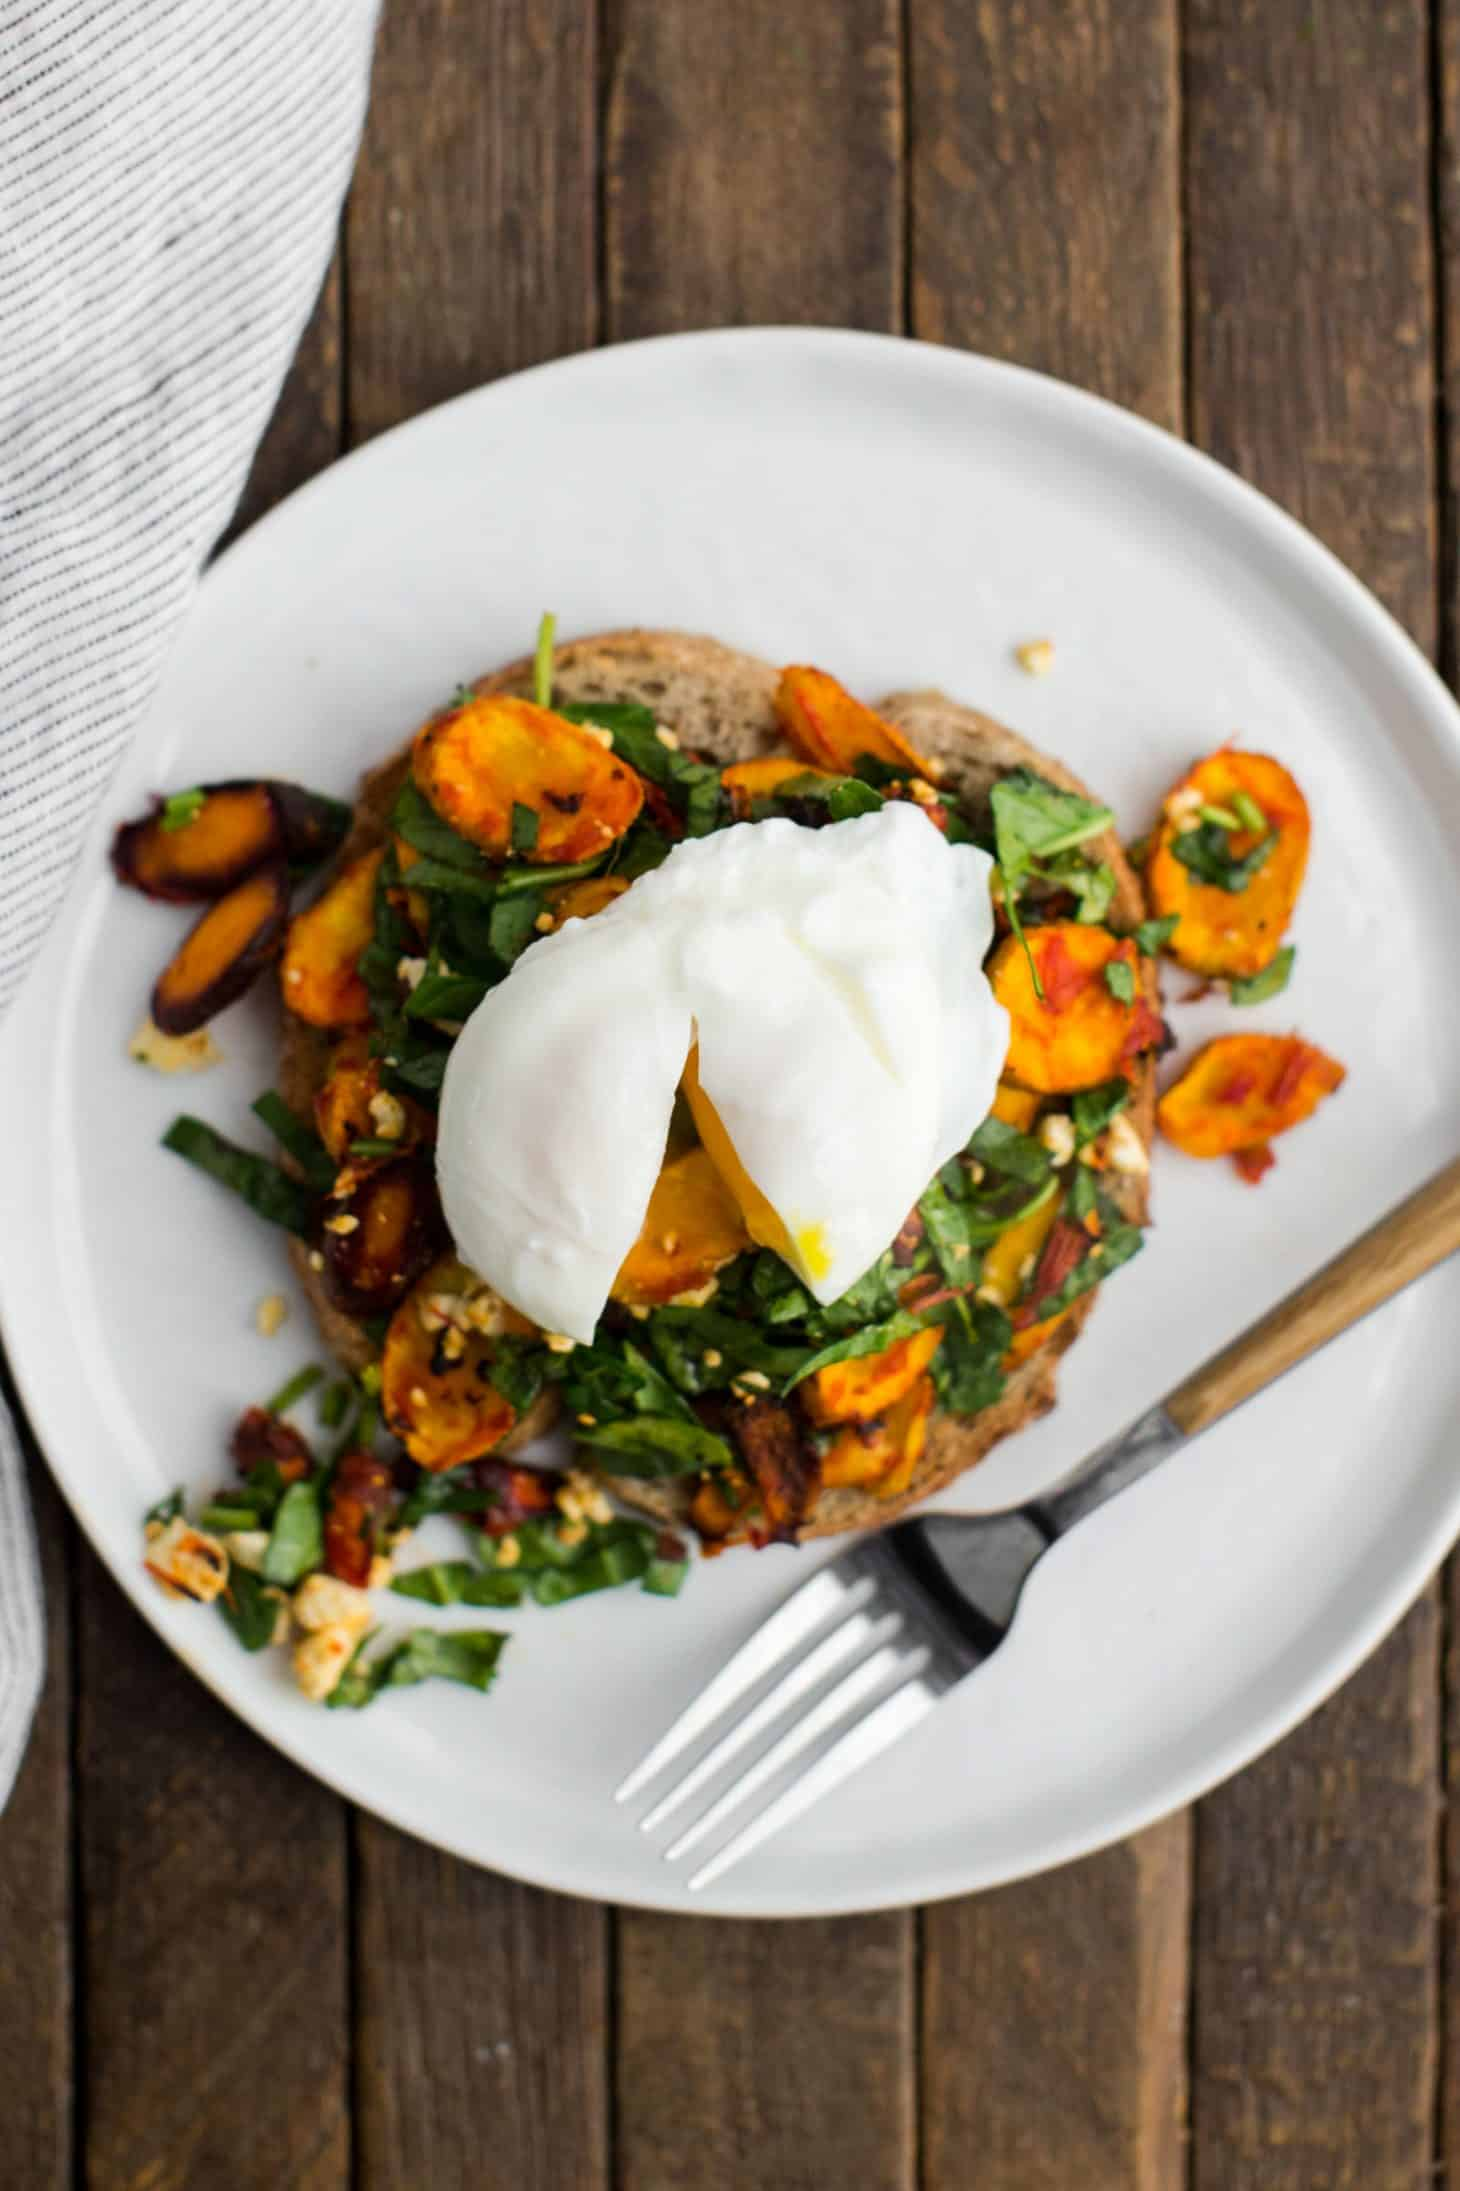 Harissa Roasted Carrot Toast with Poached Egg